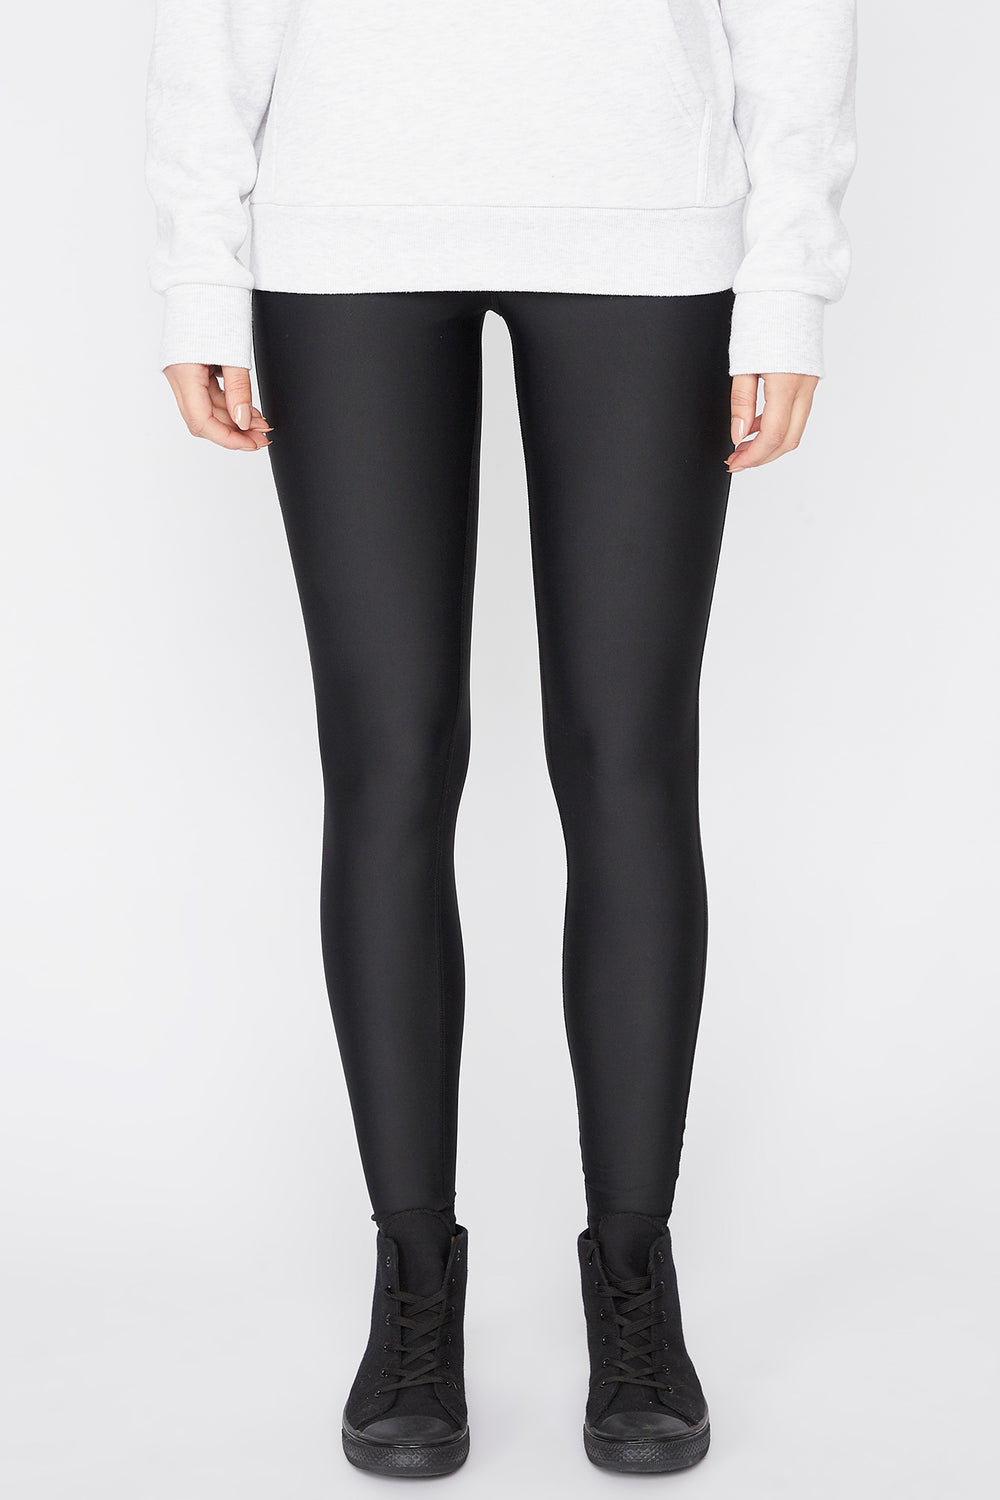 Zoo York Womens Solid Leggings Black